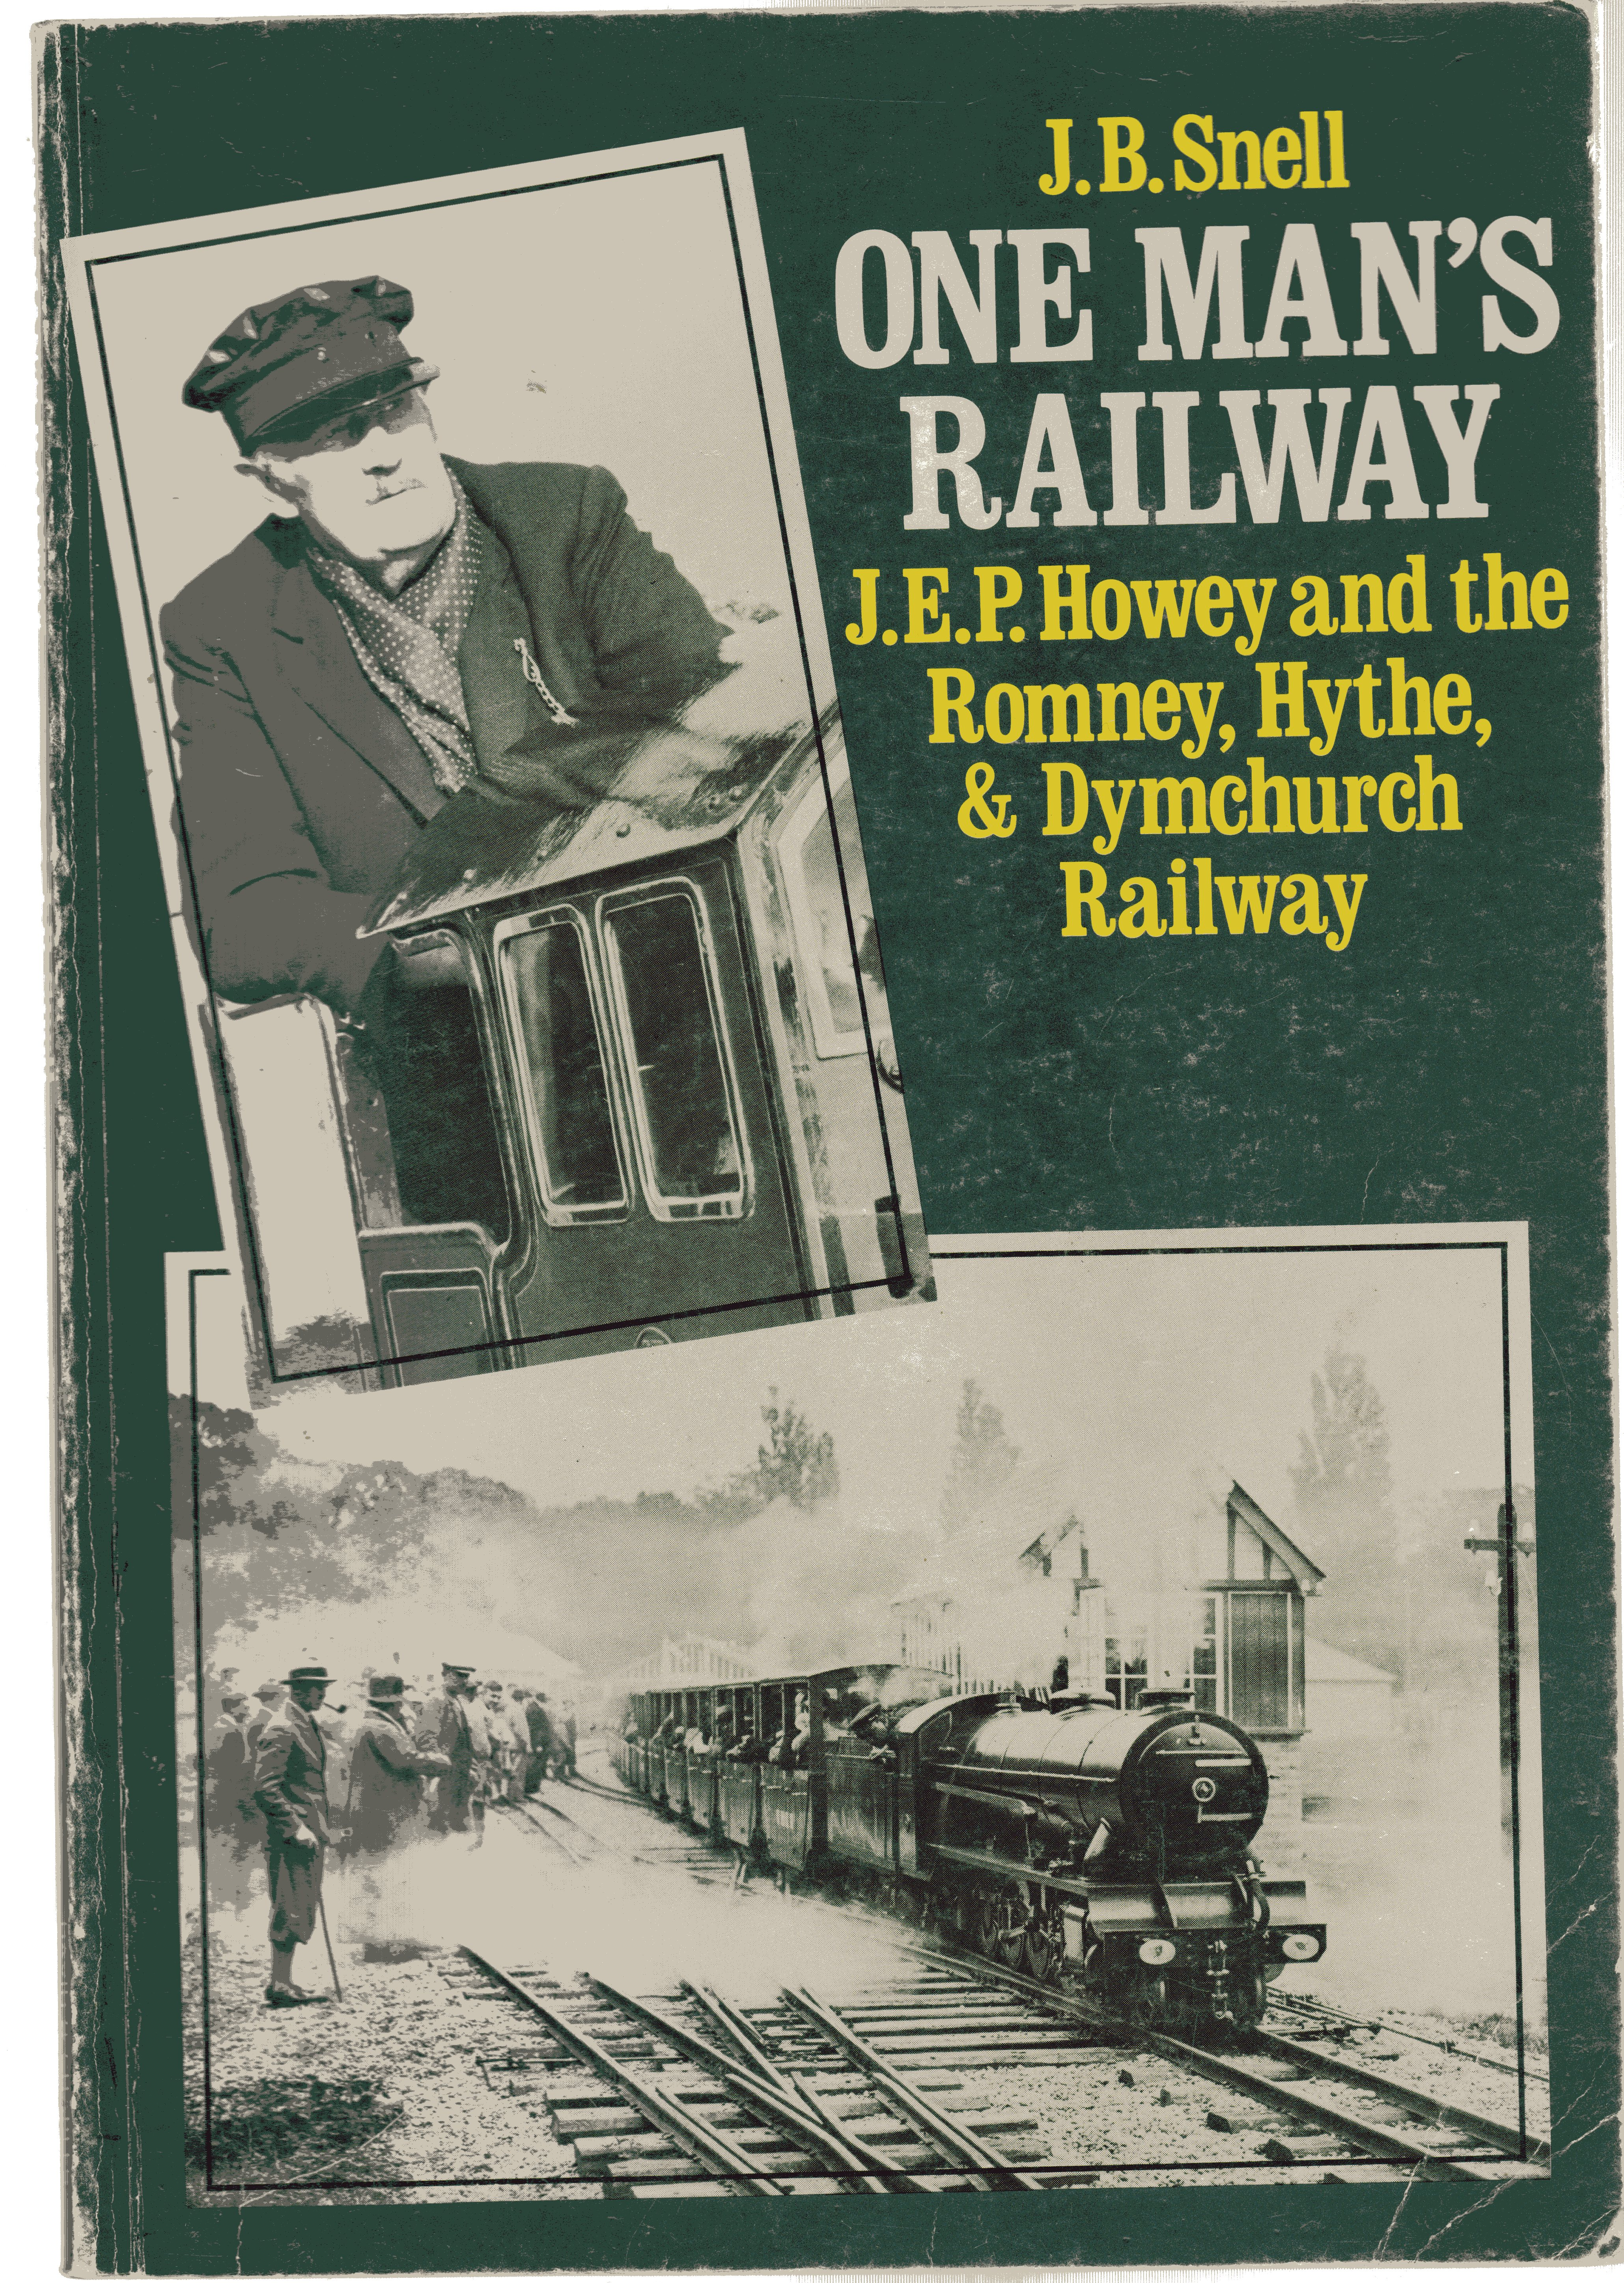 Image for One Man's Railway : J. E. P. Honey and the Romney, Hythe and Dymchurch Railway